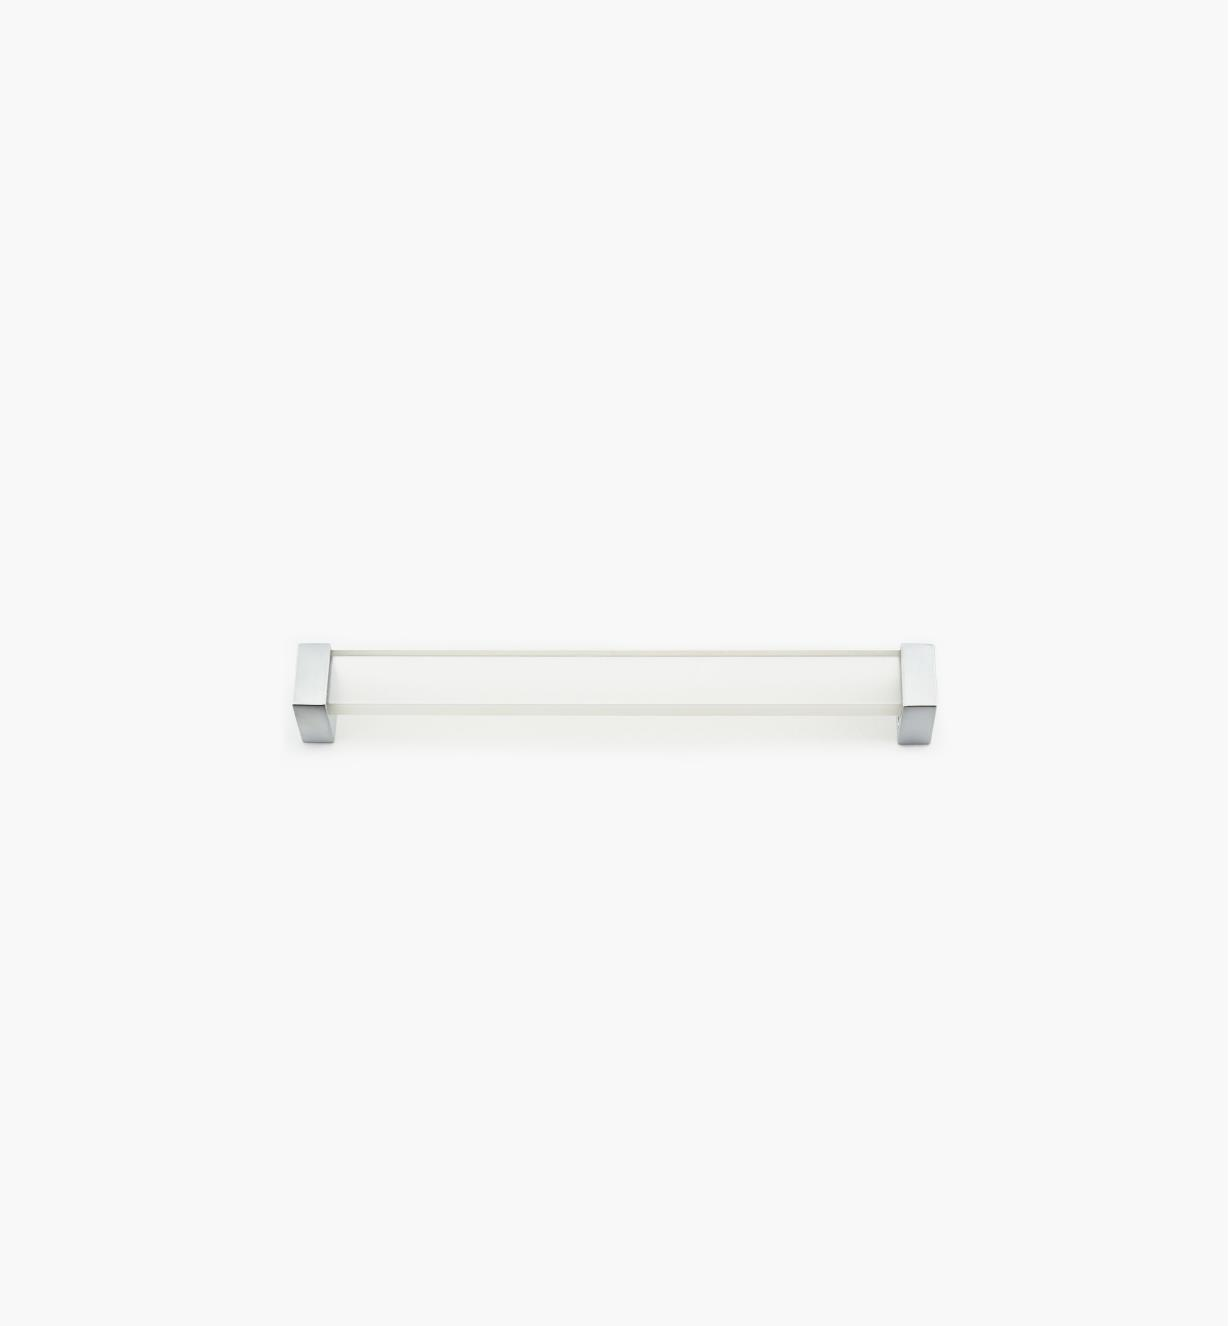 01W0965 - Madrid Hardware – 192mm Handle